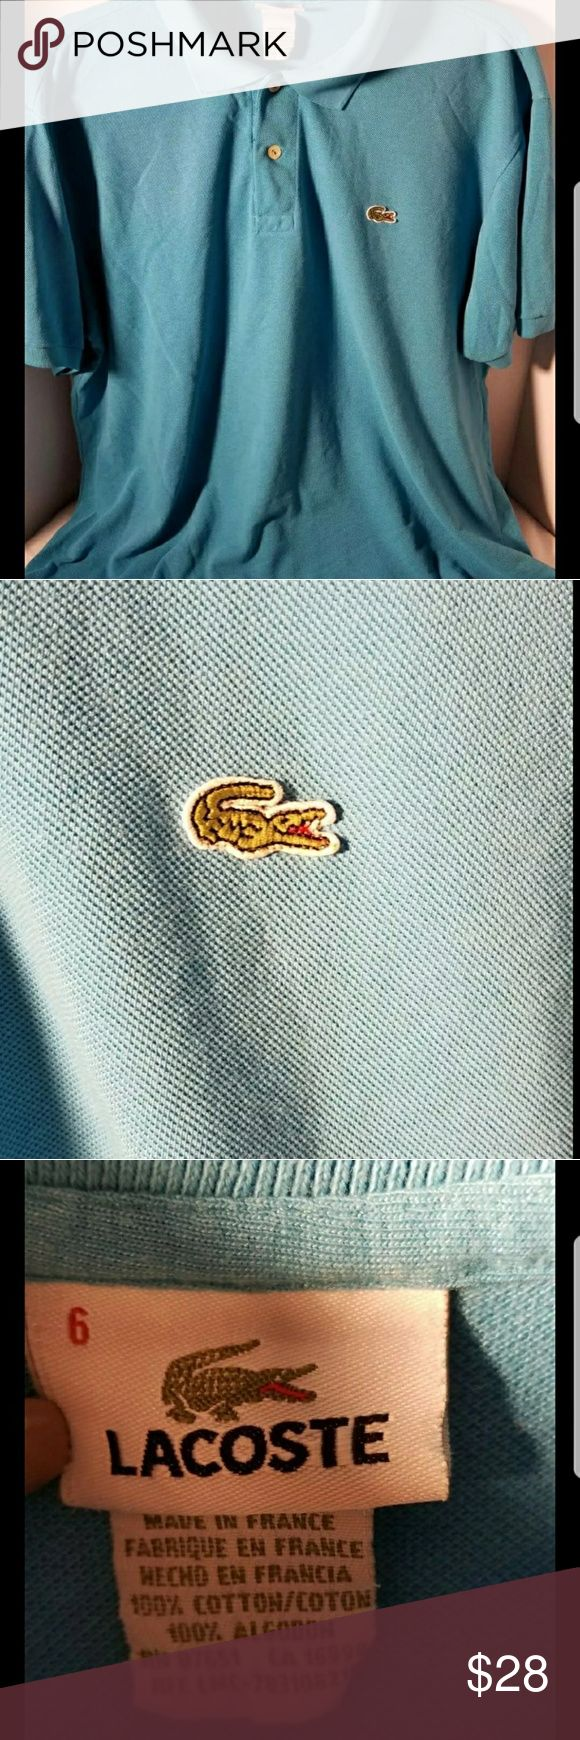 Blue Lacoste Polo Collar Shirt 6 Excellent pre-loved condition.  Lacoste men's size 6, like an XL (guessing fr looking at it). Lacoste Shirts Polos